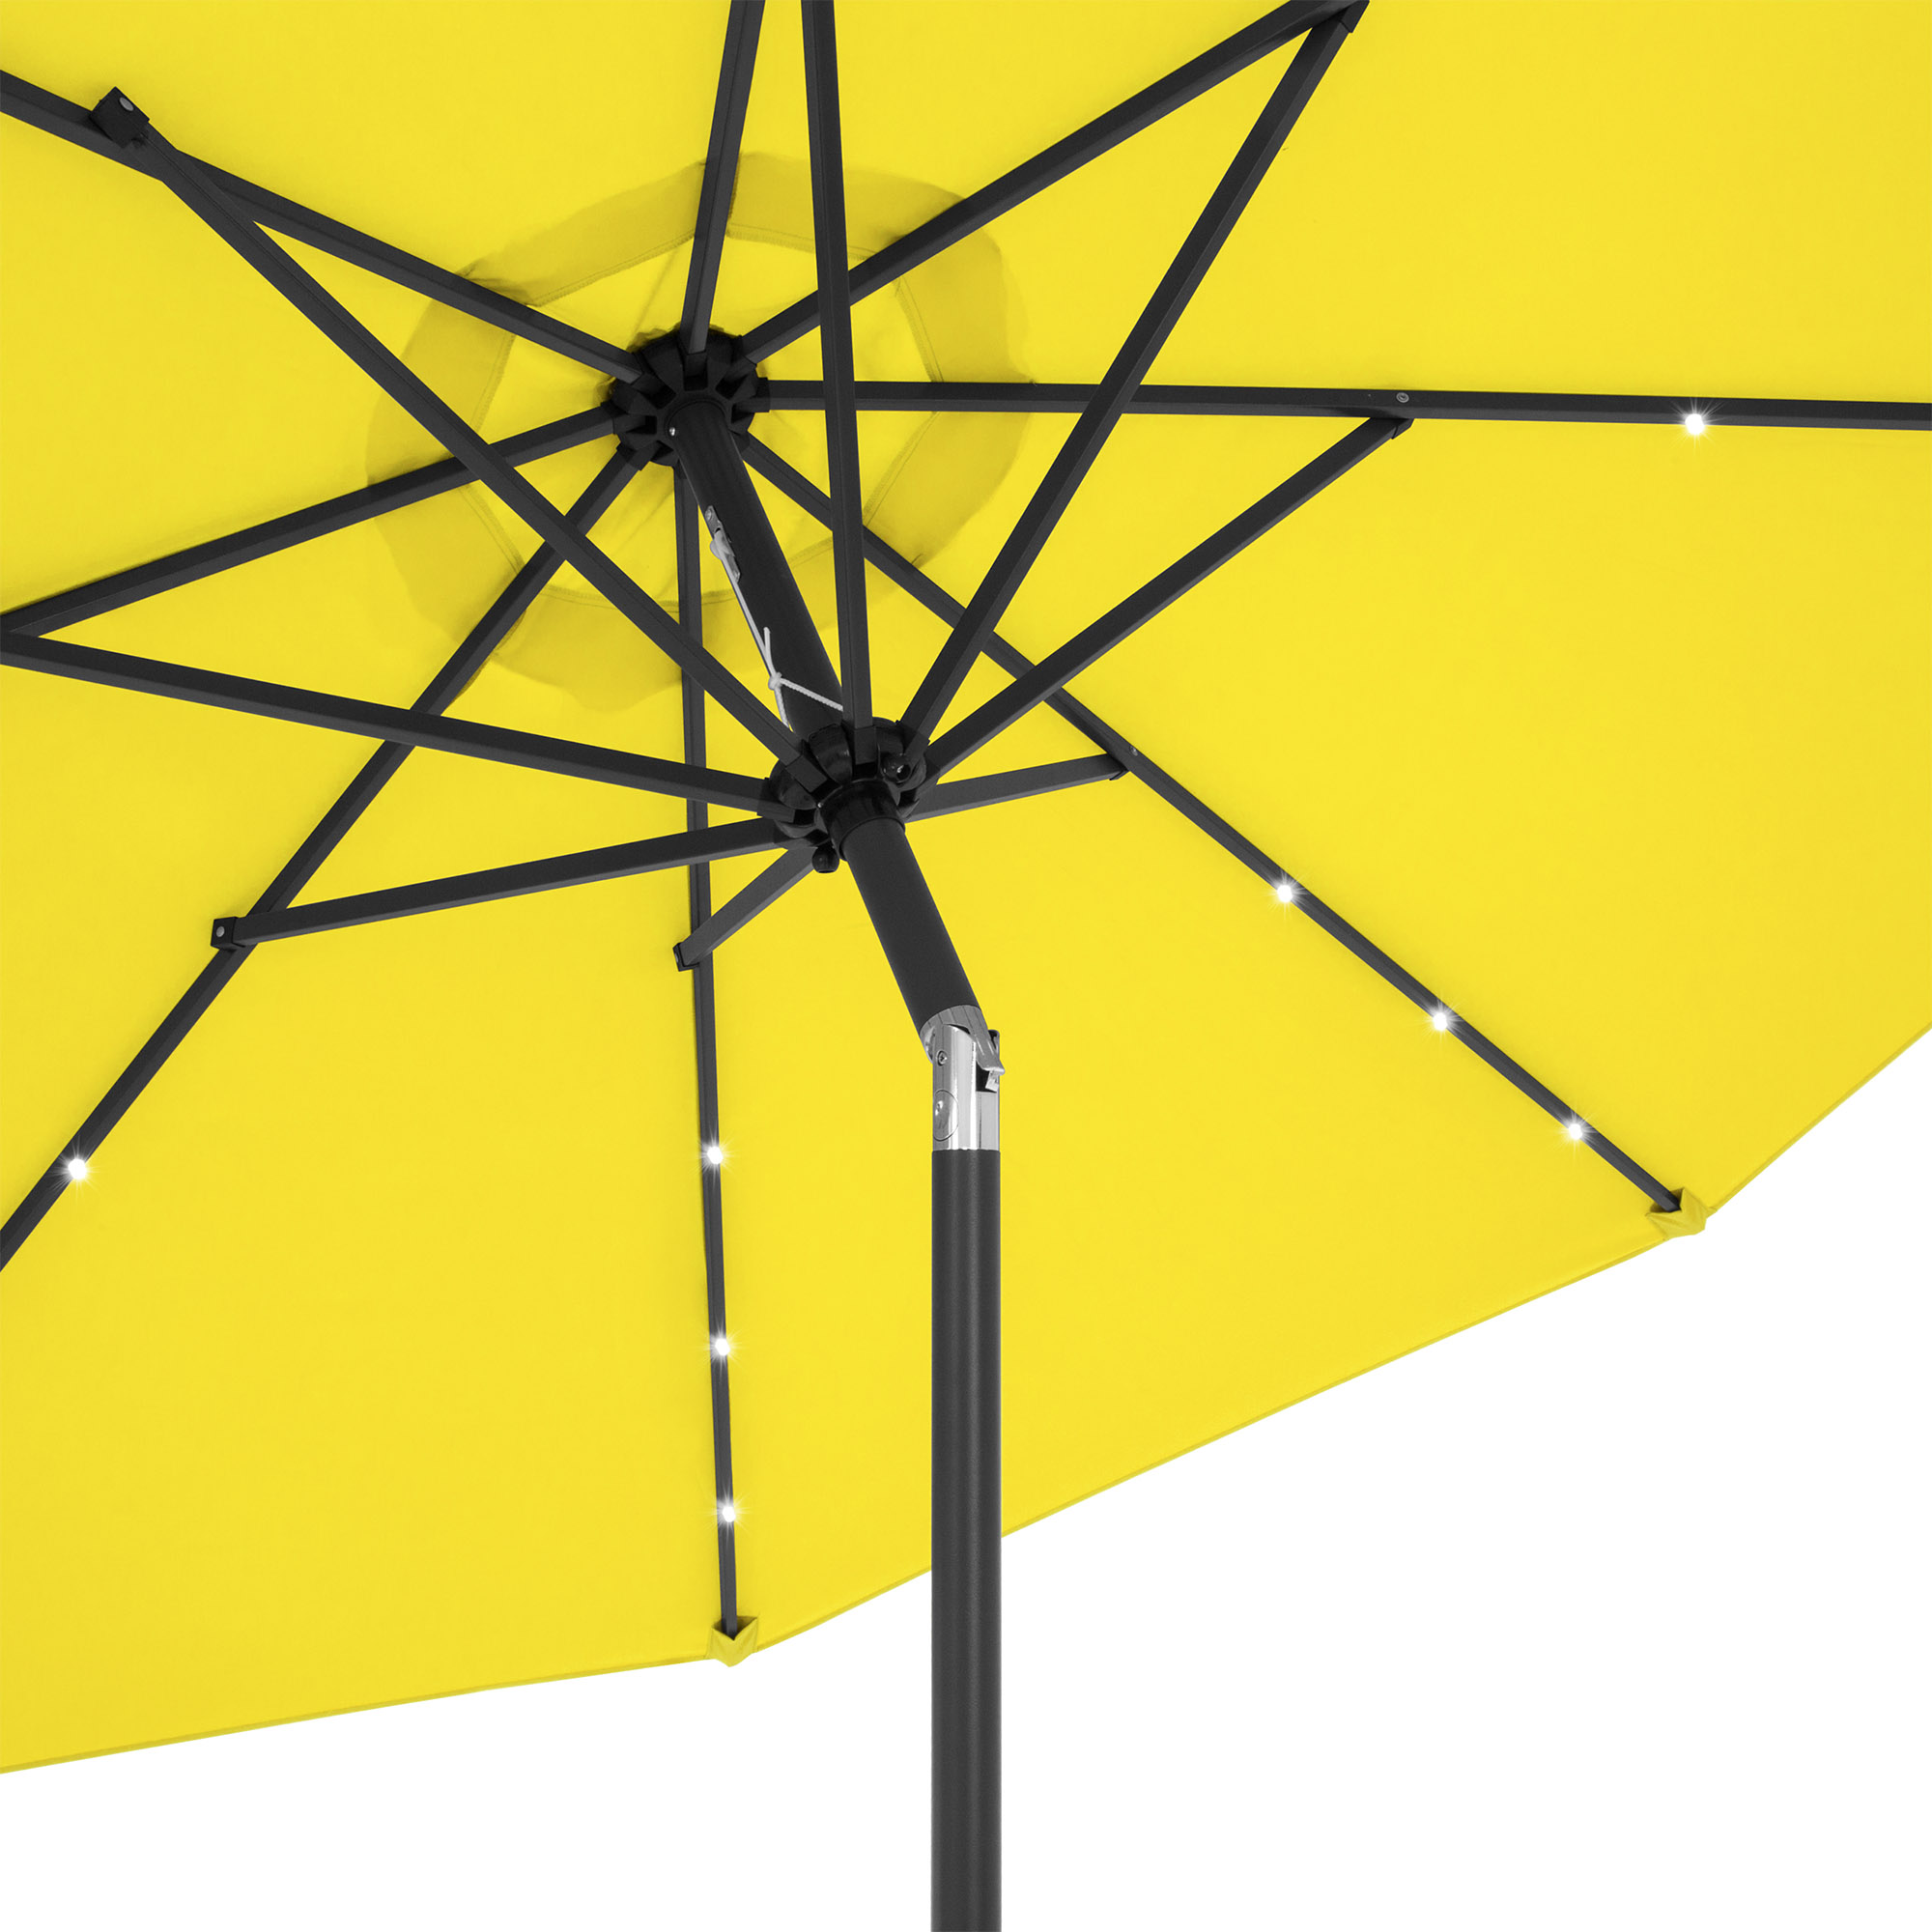 BCP-10ft-Solar-LED-Lighted-Patio-Umbrella-w-Tilt-Adjustment-Fade-Resistance thumbnail 82